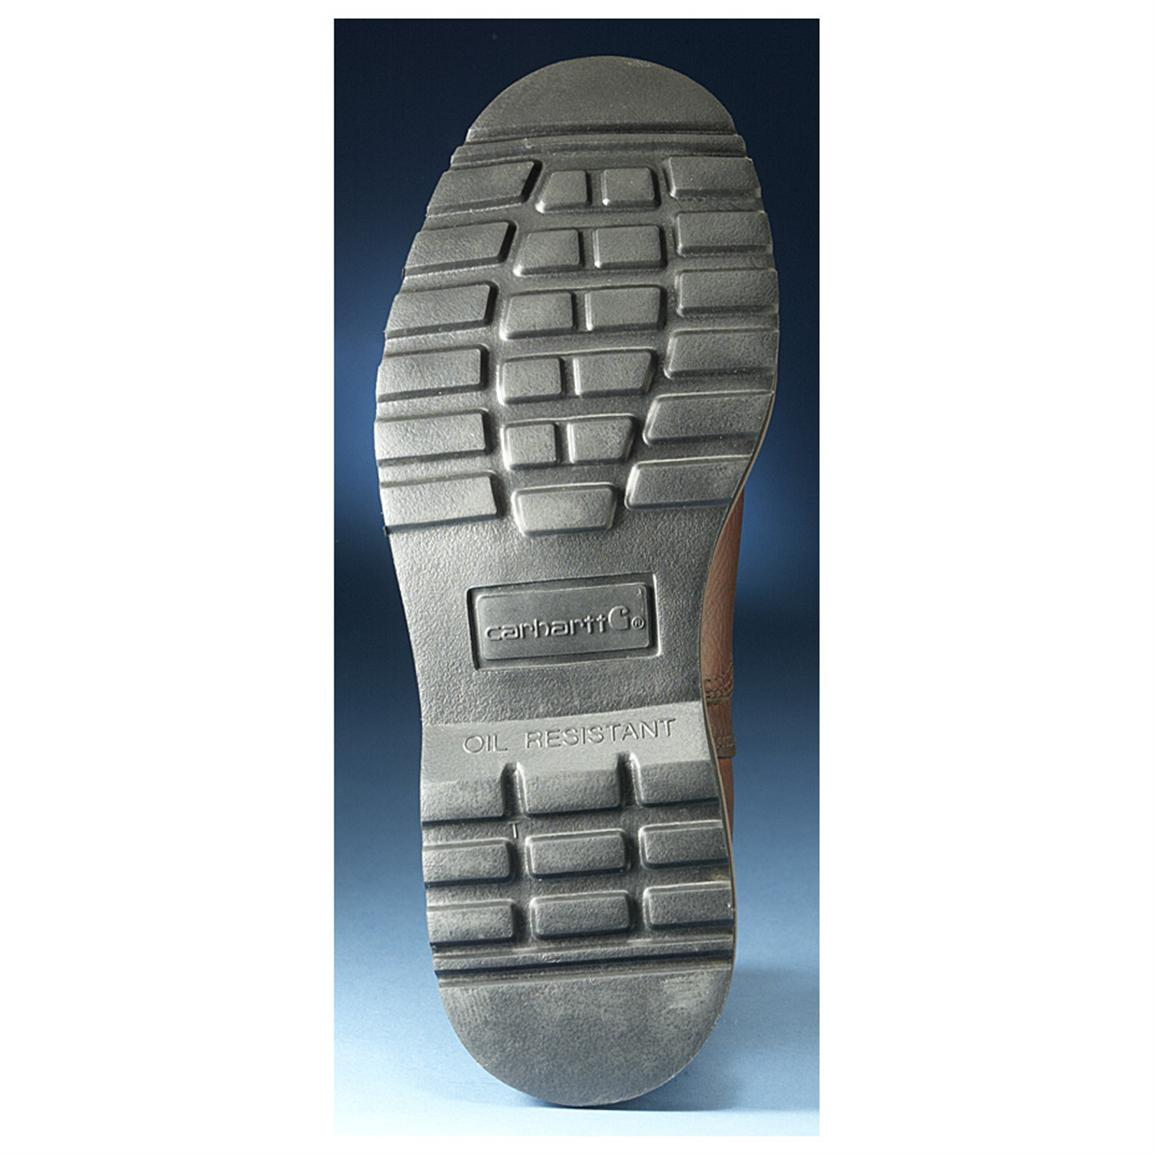 Oil, chemical and slip-resistant blown-rubber outsole